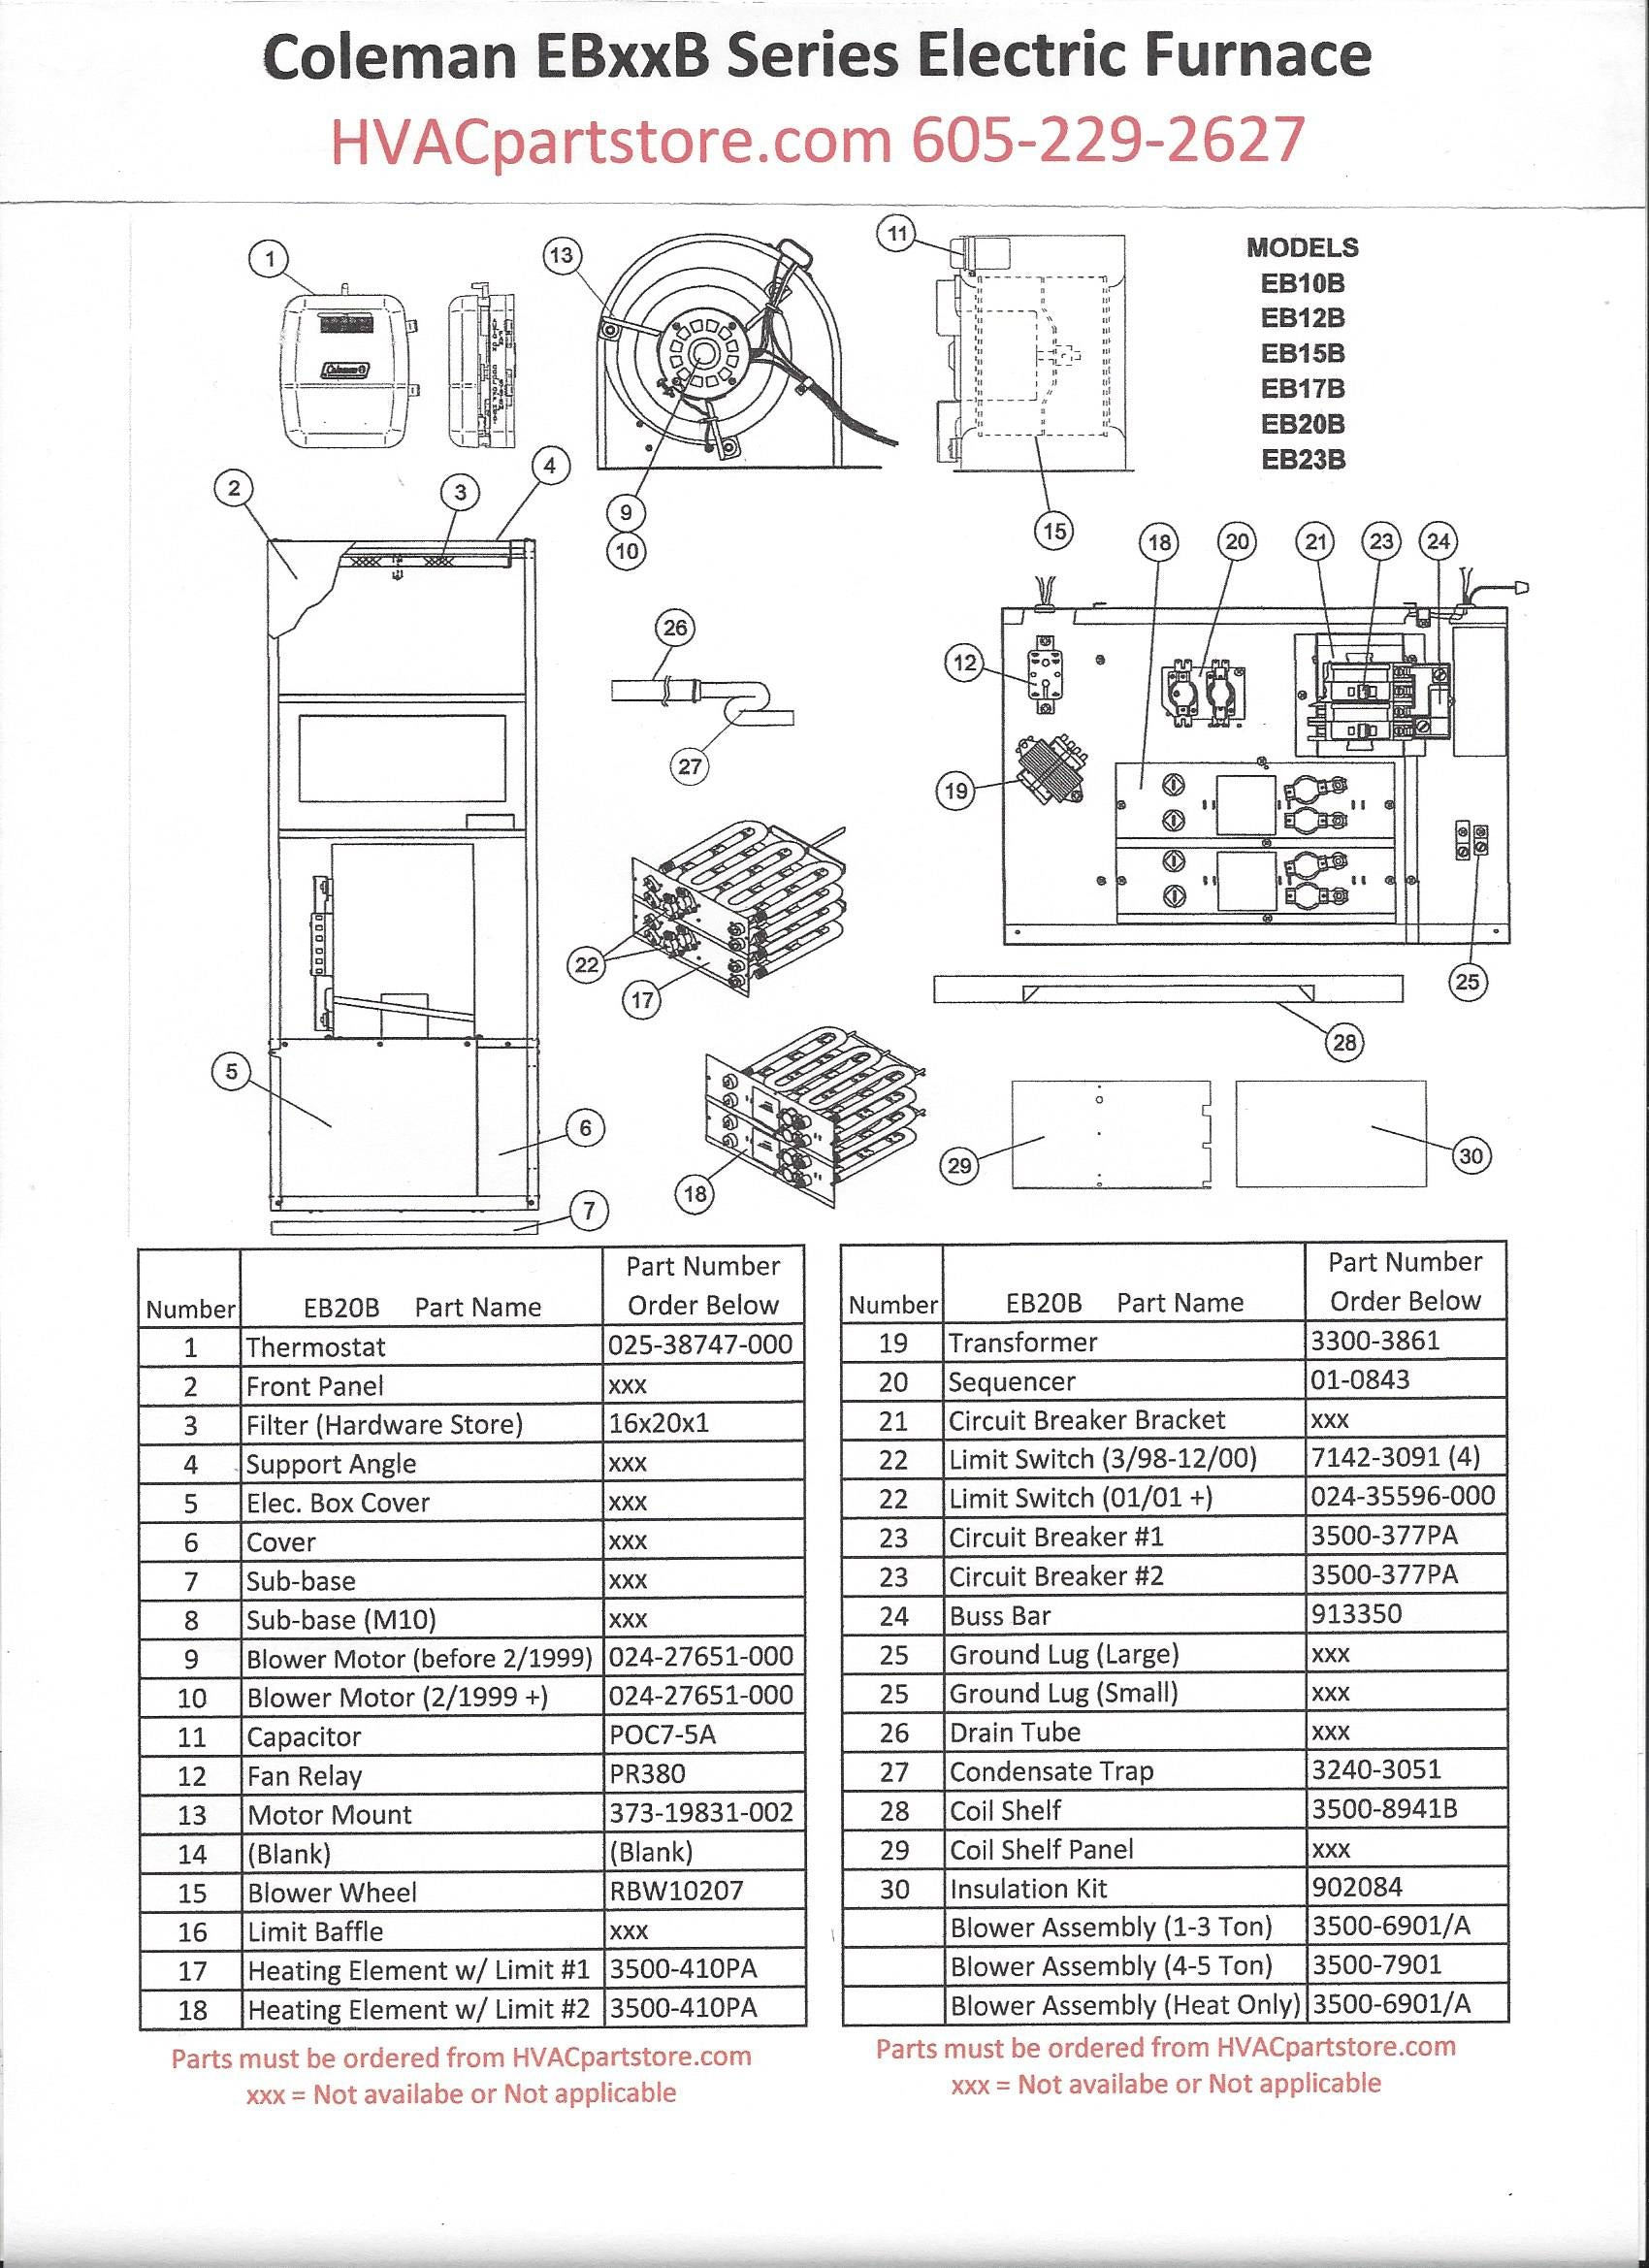 Cool Coleman Parts And Wiring Diagrams General Wiring Diagram Data Wiring Cloud Hisonuggs Outletorg